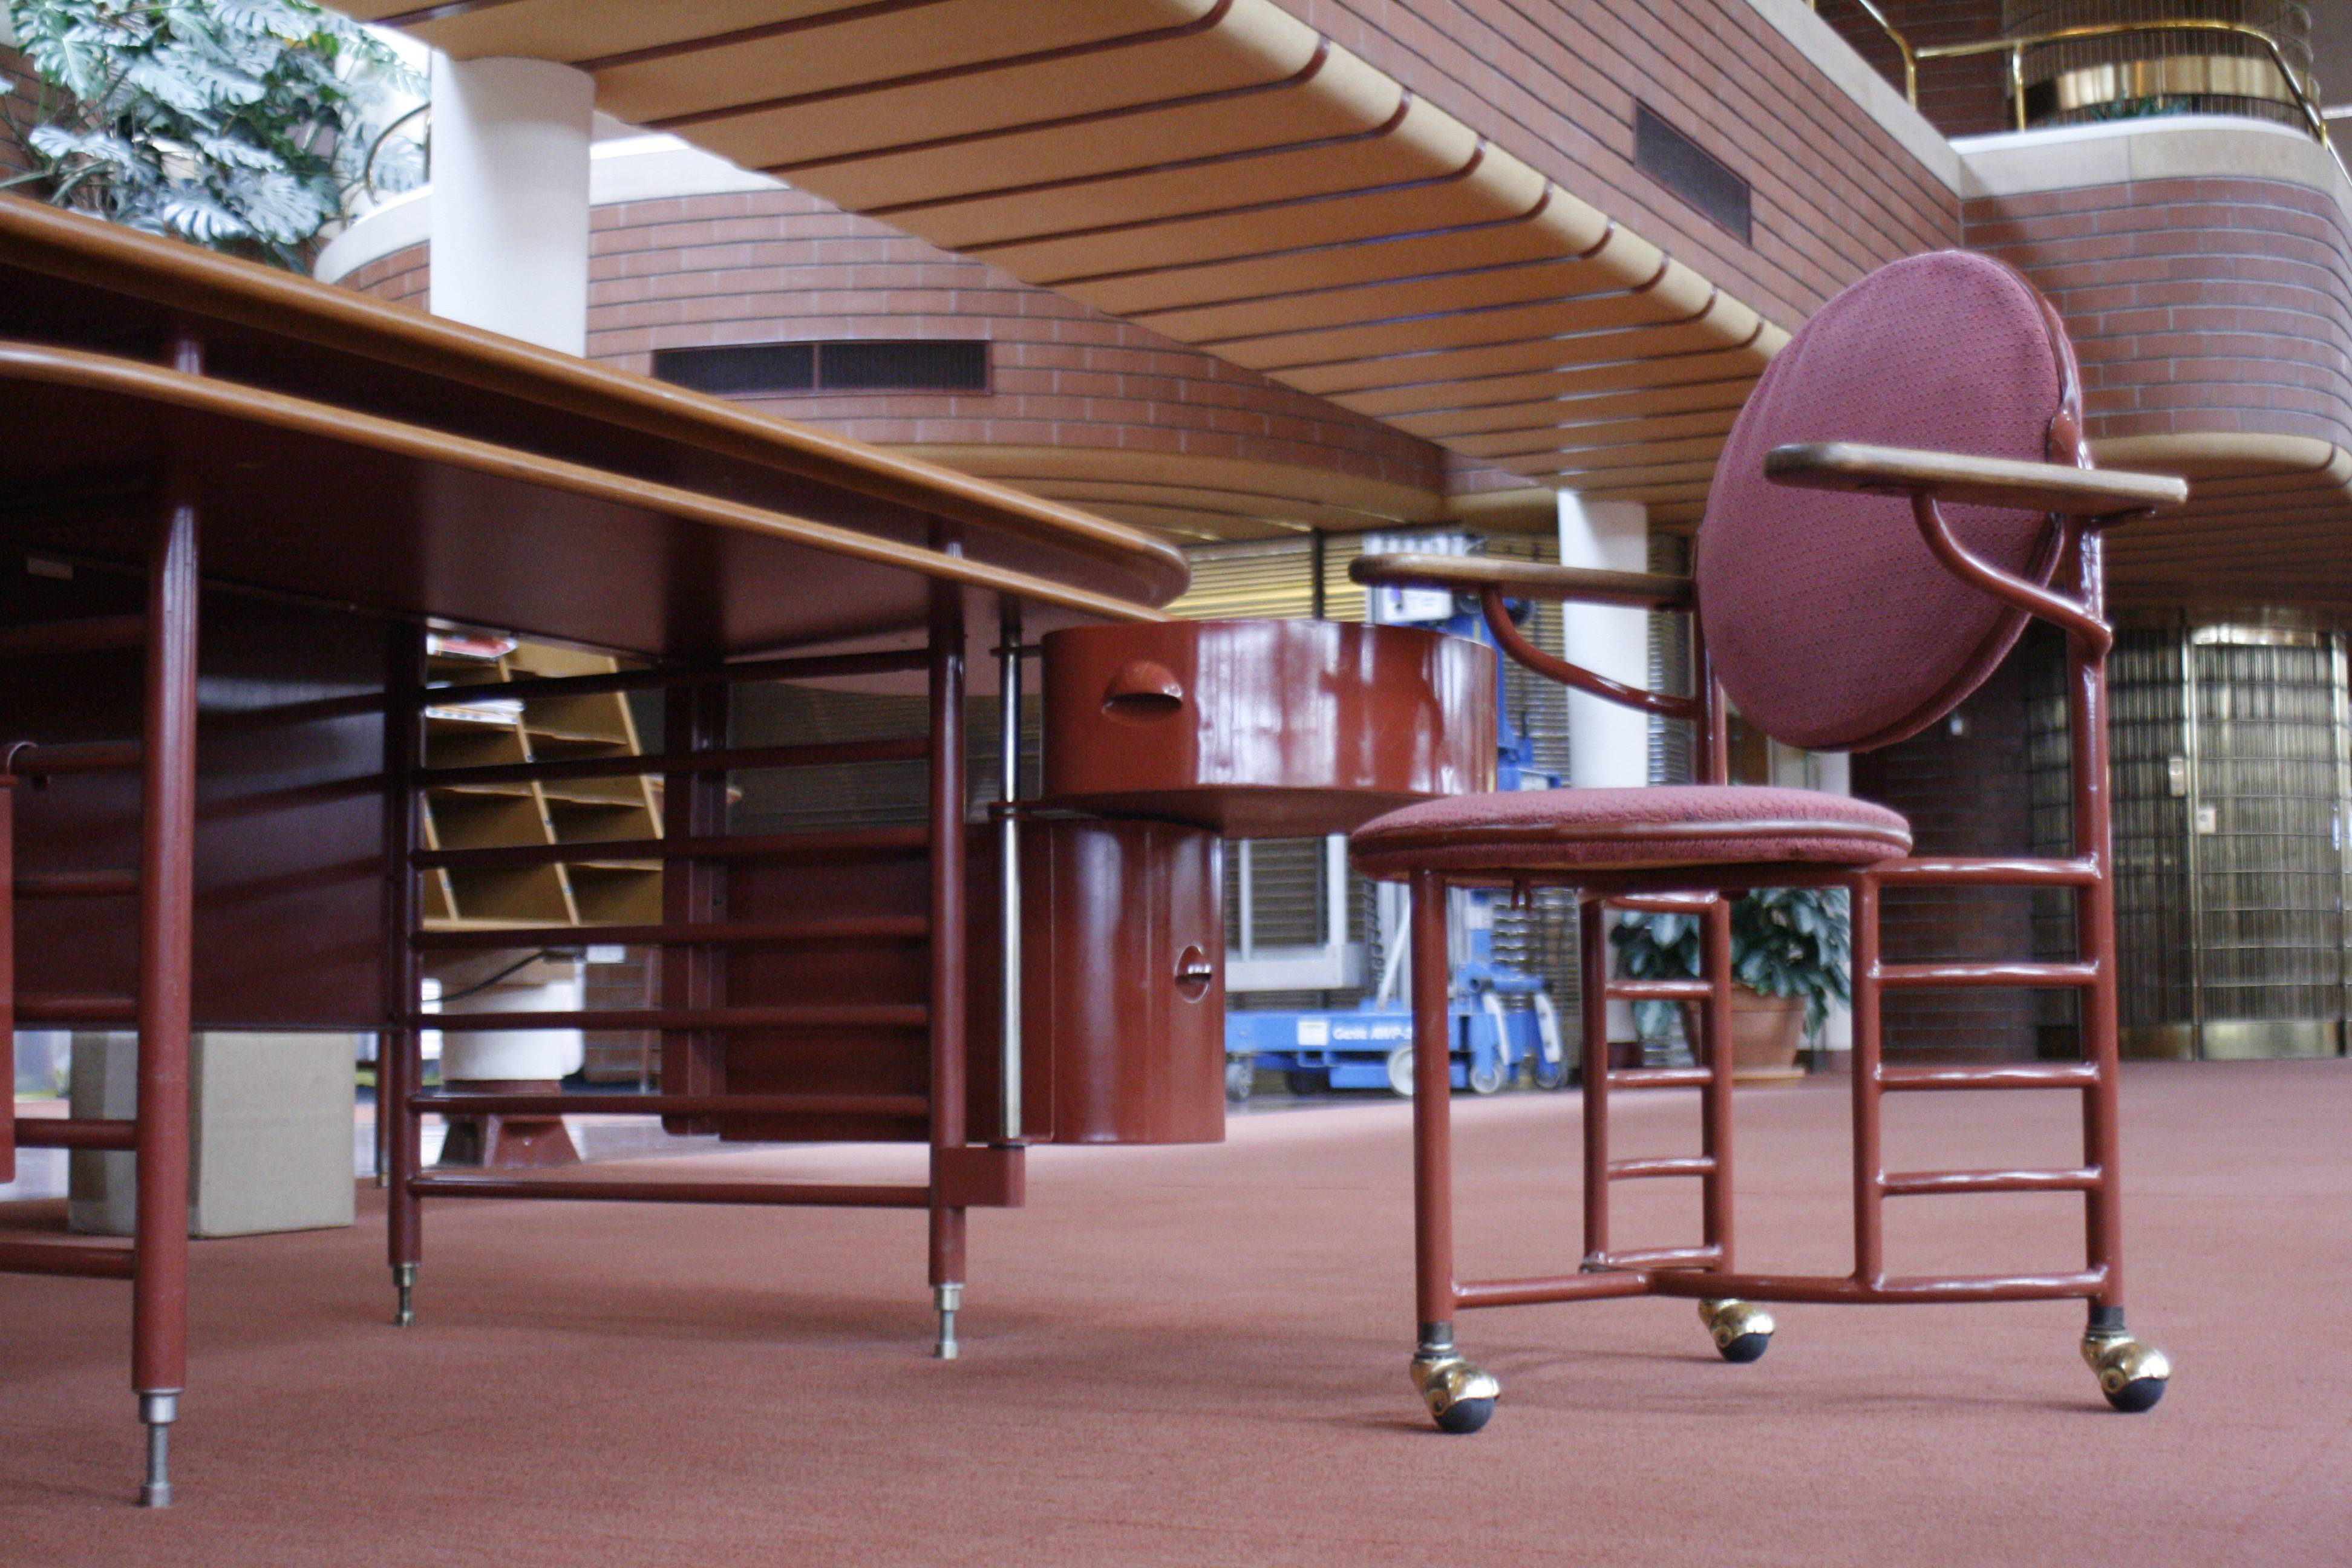 On the tour, visitors can see an original desk and a three-legged chair designed by architect Frank Lloyd Wright for workers at the SC Johnson Administration Building in Racine, Wis. Most employees' chairs were later modified to have four legs because employees kept tipping over.